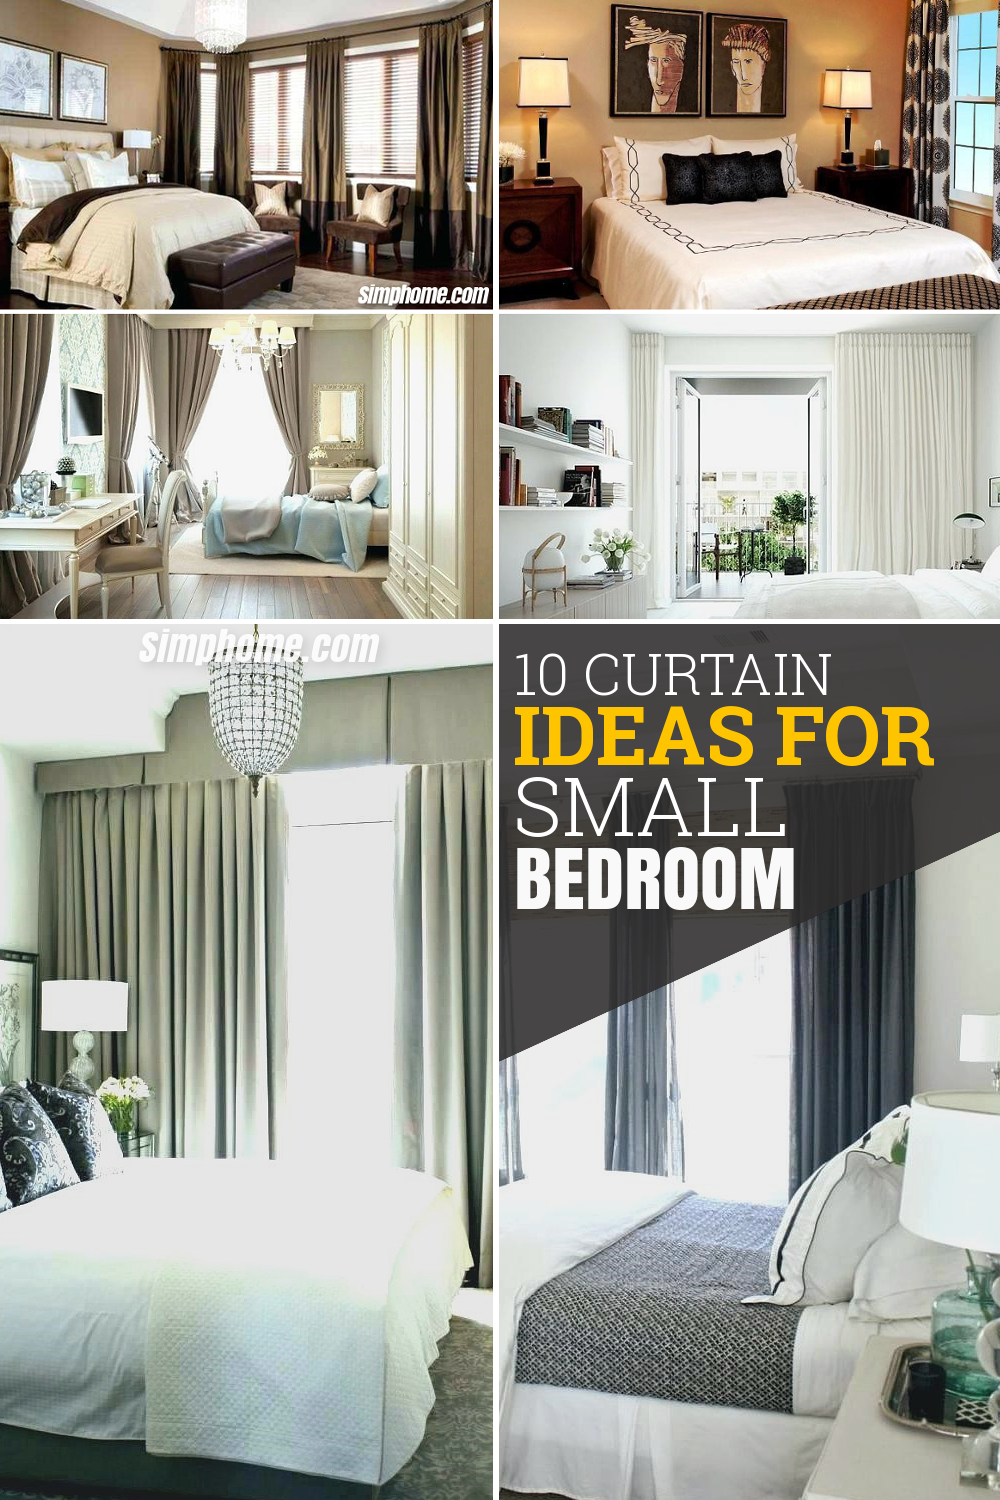 10 Curtain Ideas For Small Bedroom Simphome